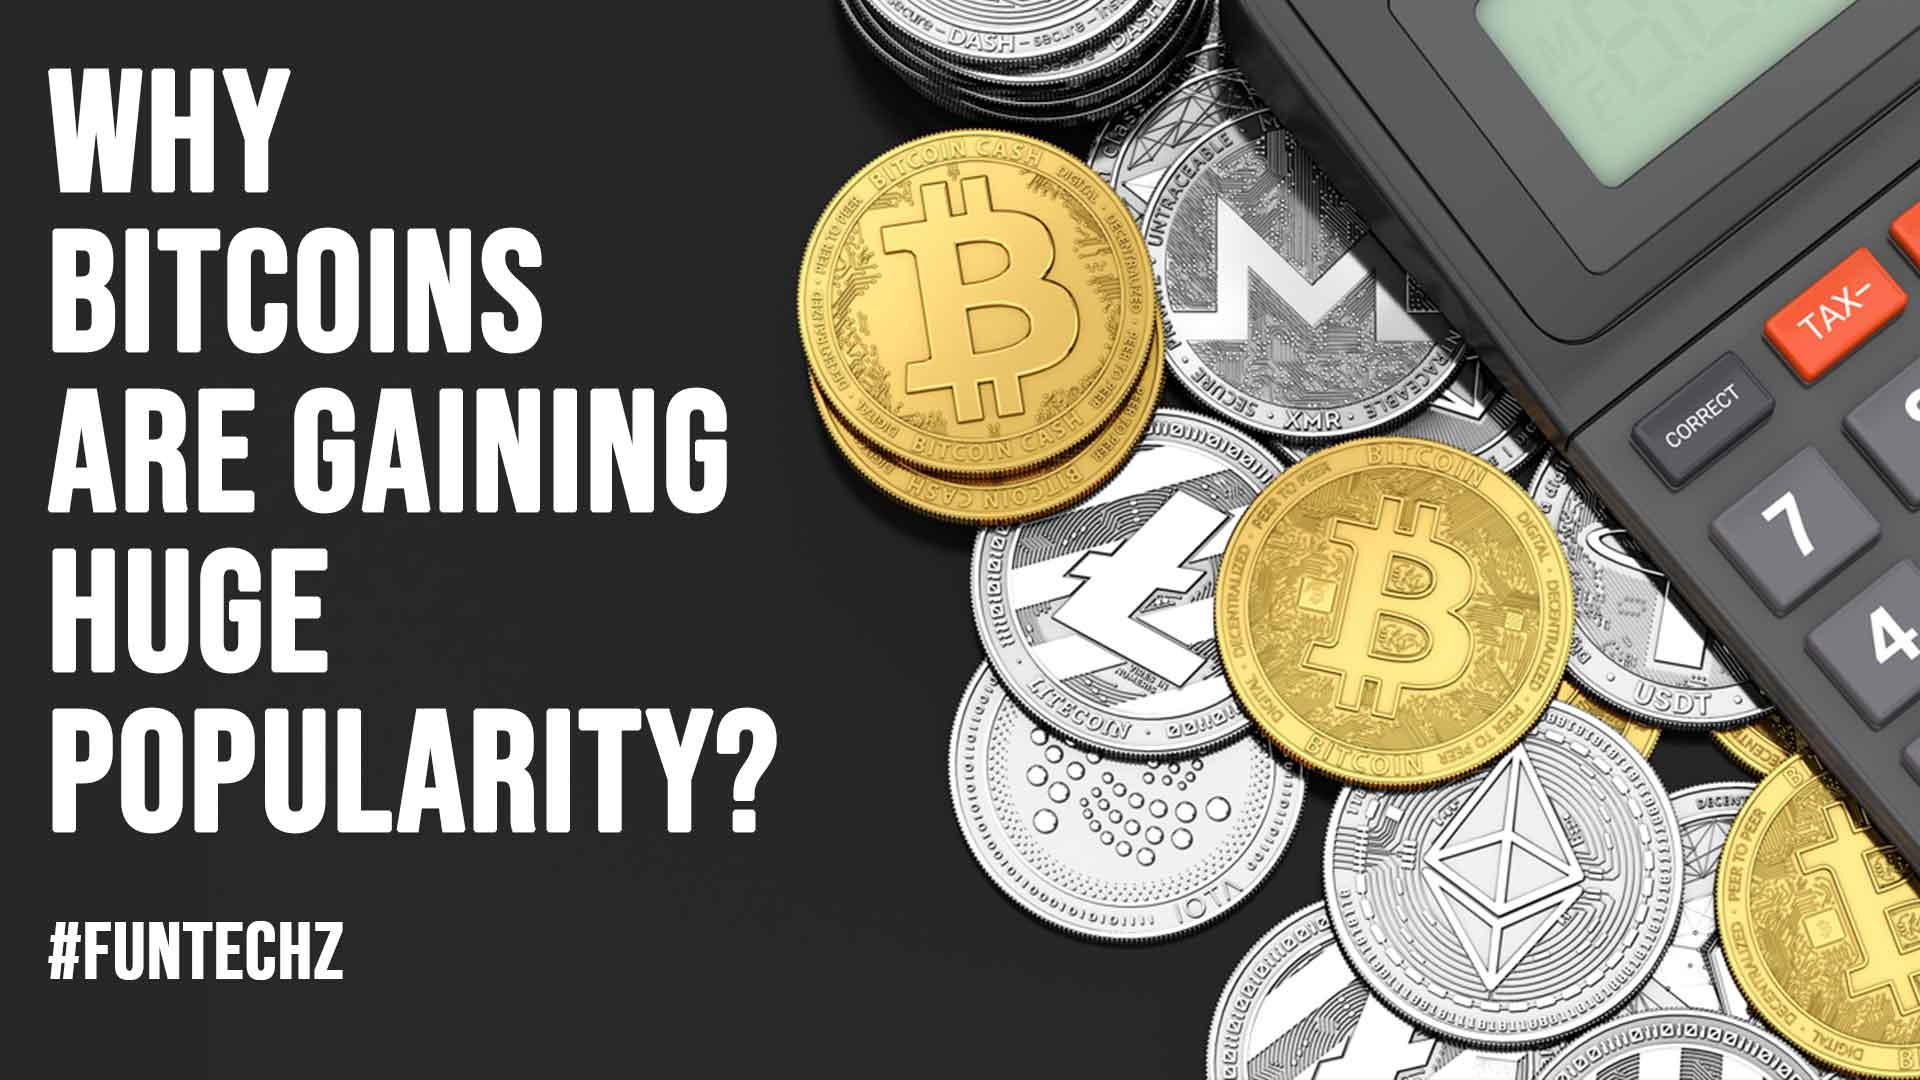 Why Bitcoins Are Gaining Huge Popularity